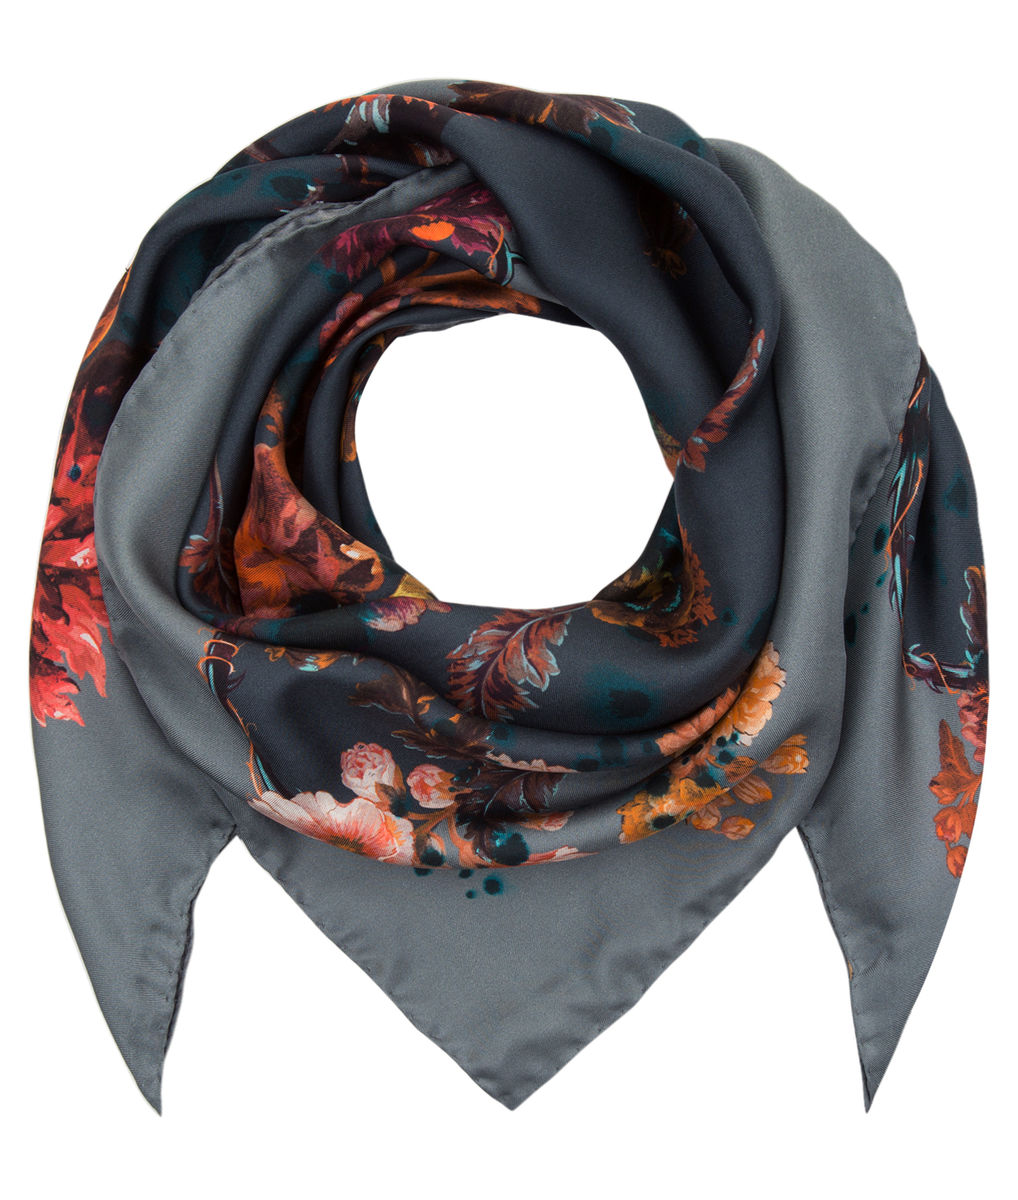 Medium scarf in Gothic Floral print (petrol) - product images  of